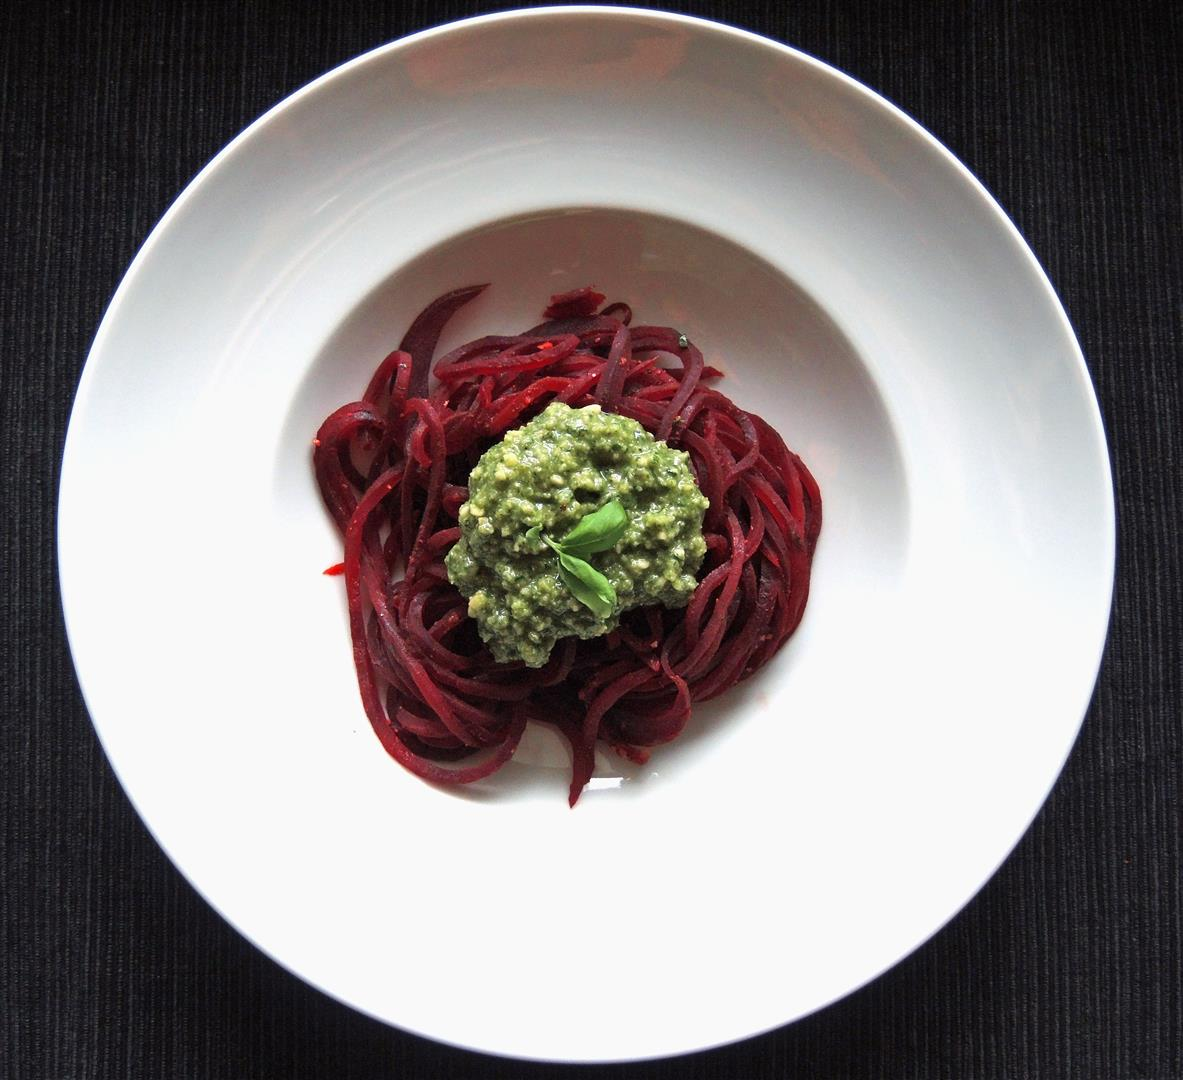 rote bete spaghetti mit pesto vegan chilirosen. Black Bedroom Furniture Sets. Home Design Ideas